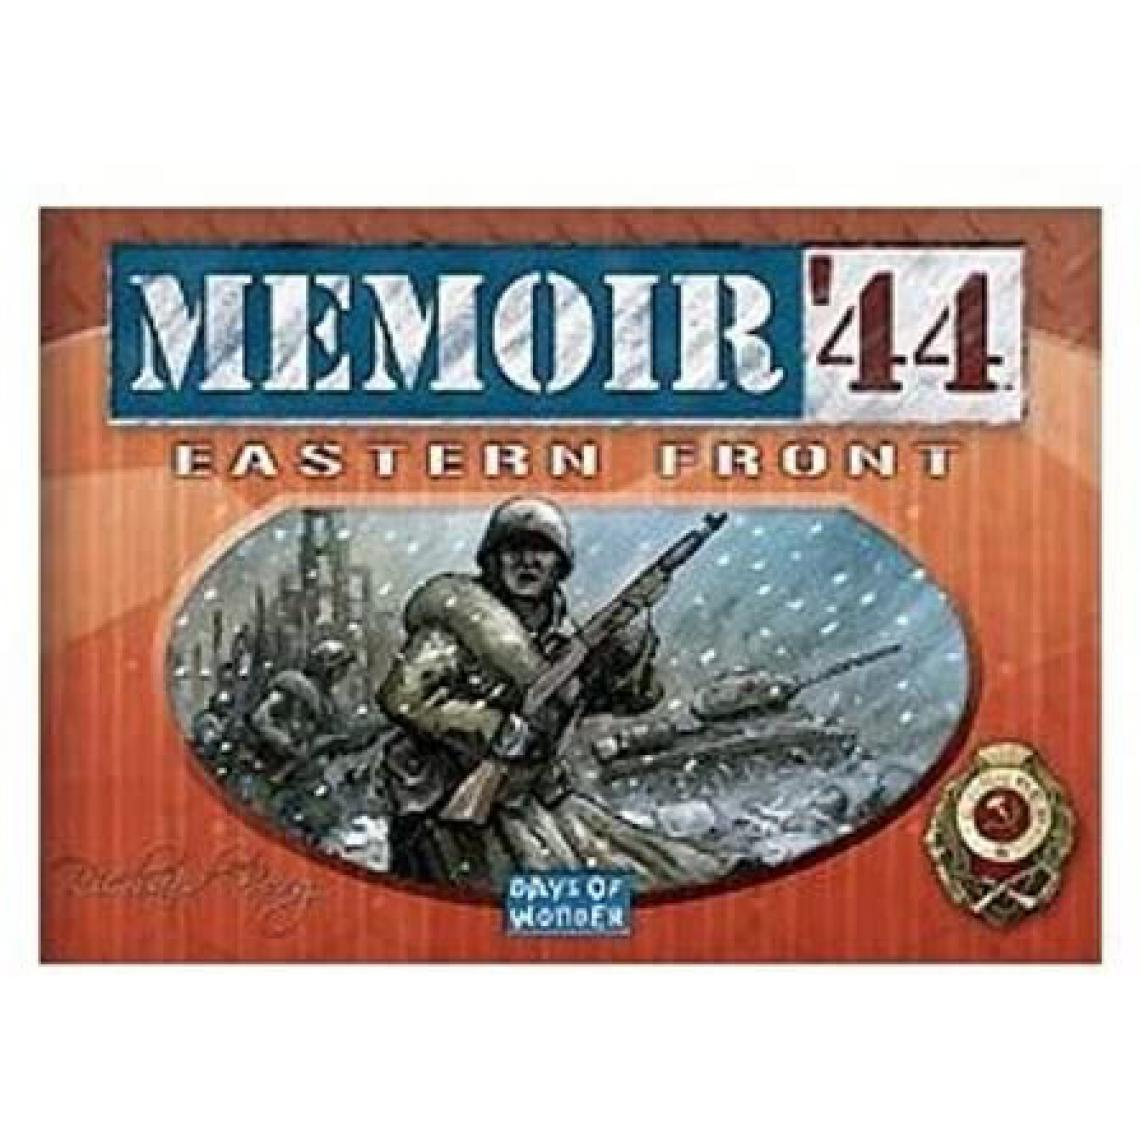 Asmodee Memoire 44 - Front Est extension